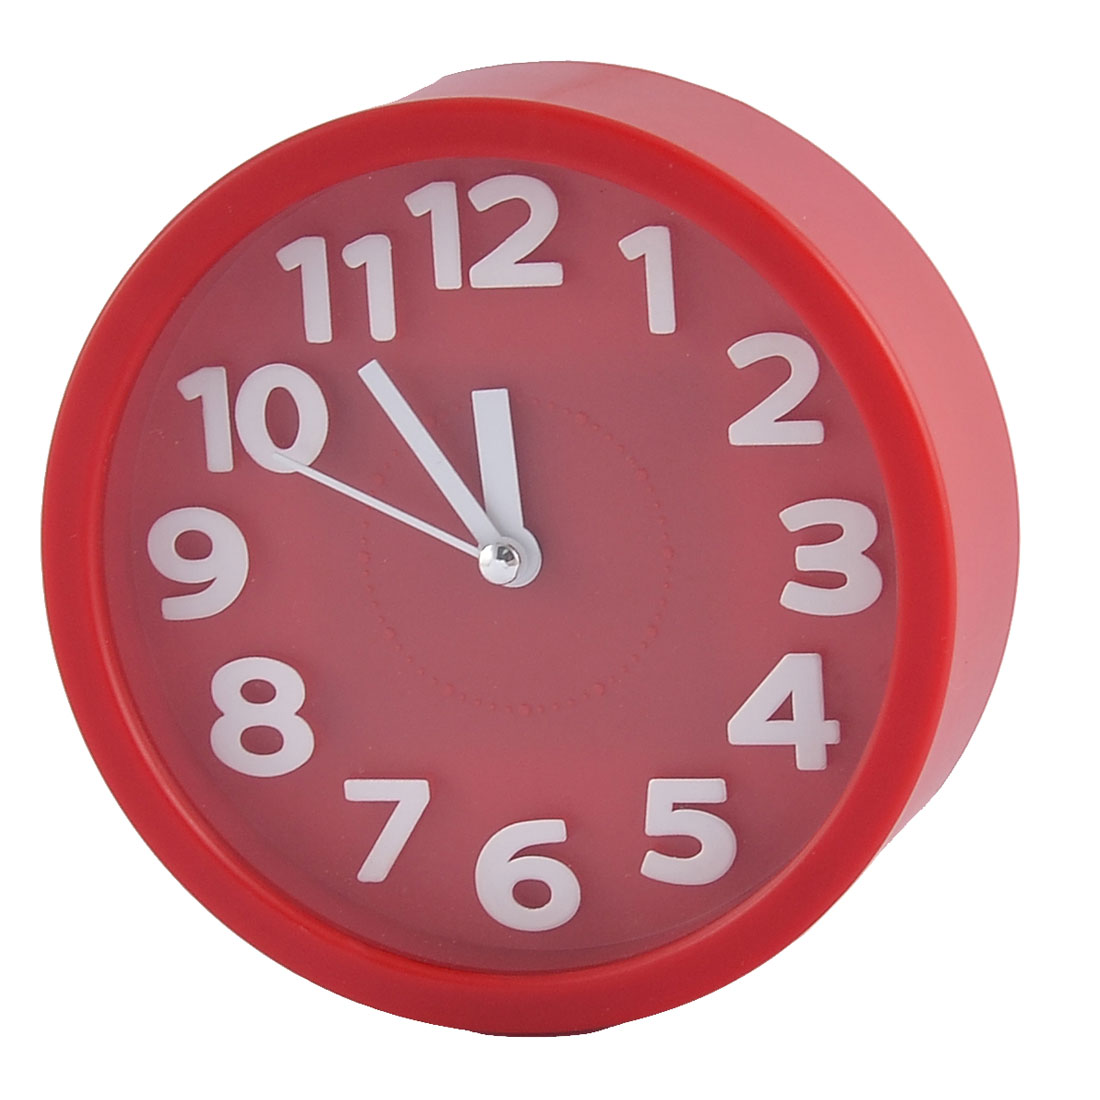 Household Office Desktop Plastic Round Silent Battery Powered Arabic Number Alarm Clock Red